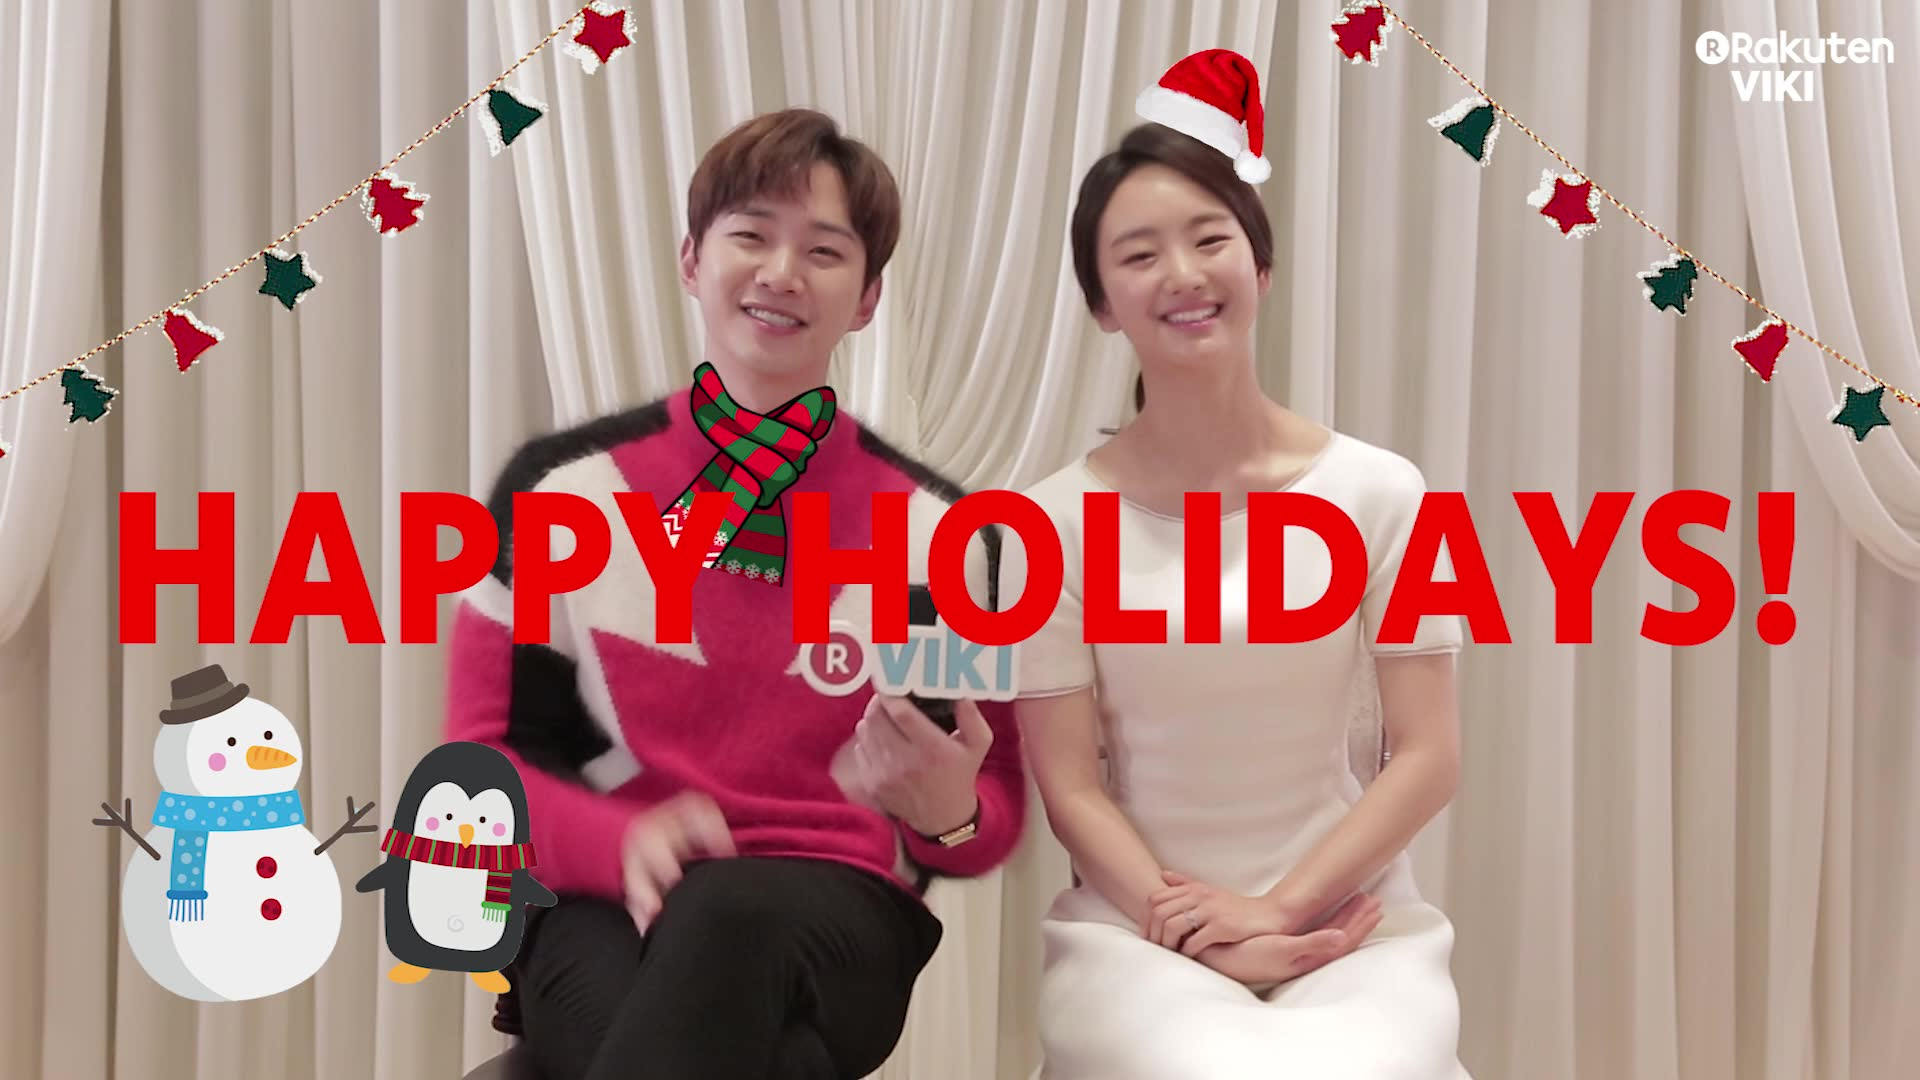 Holiday Greetings from Junho and Won Jin Ah: 無論晴雨